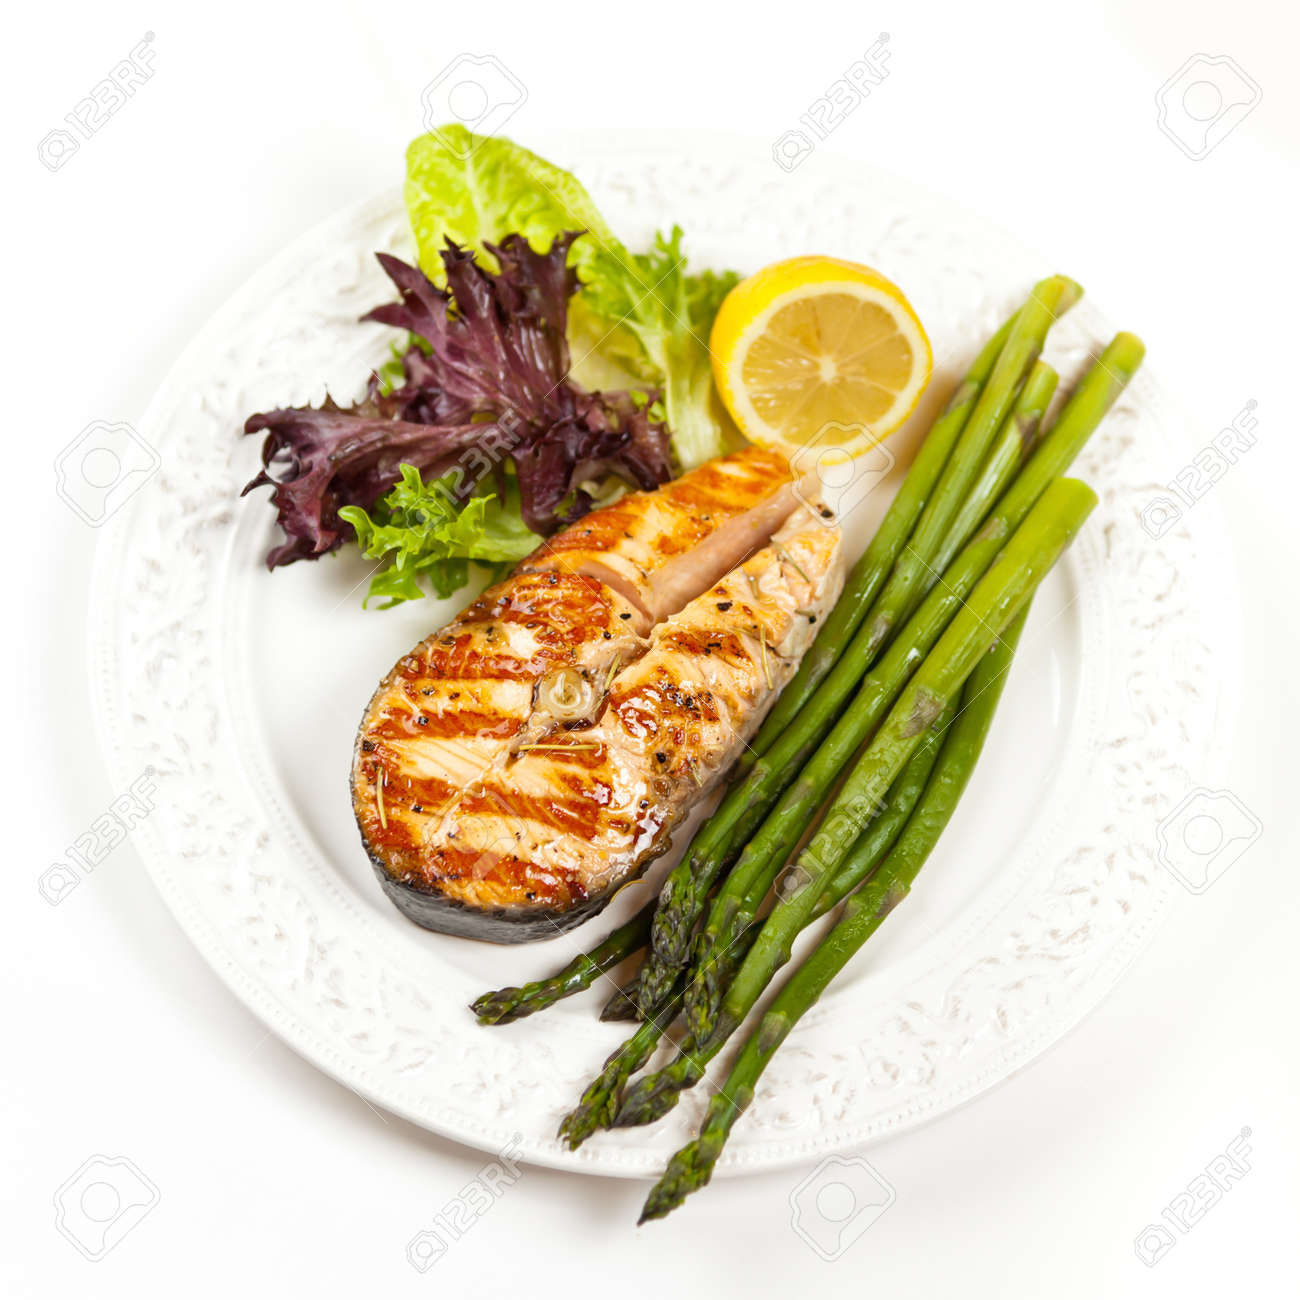 Grilled salmon steak with asparagus, lemon and salad Stock Photo - 19806470